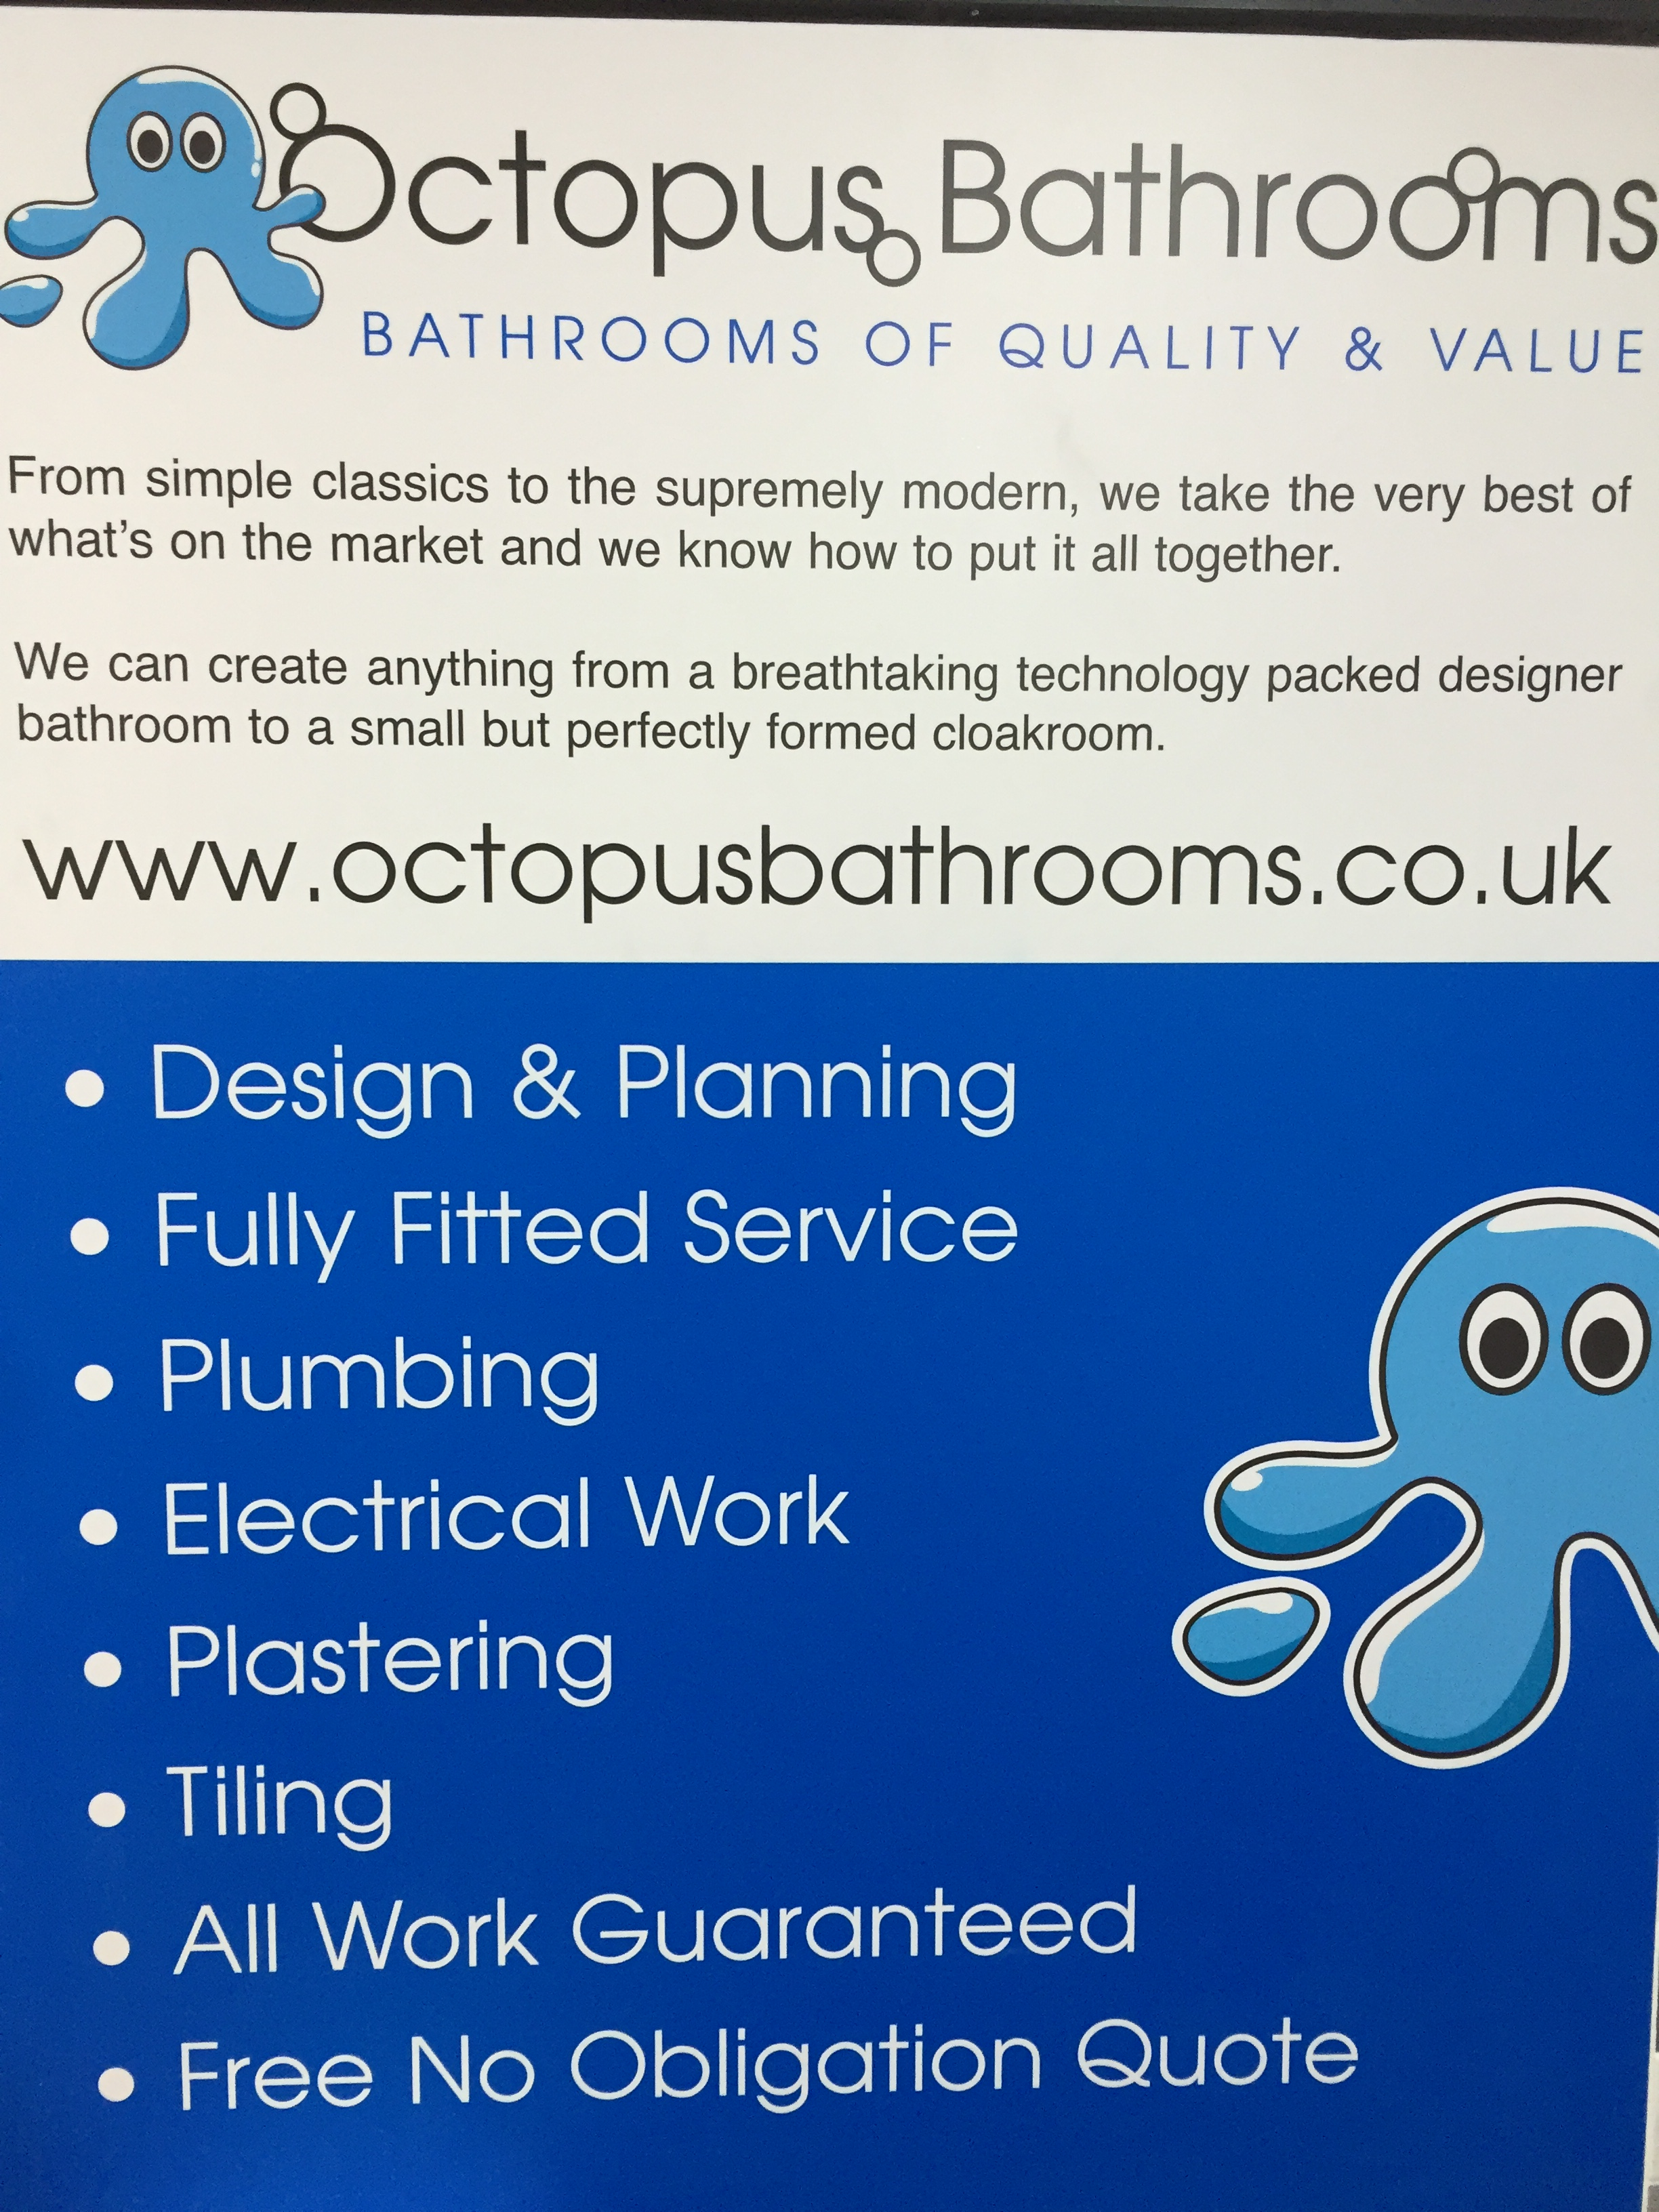 OCTOPUS BATHROOMS LIMITED